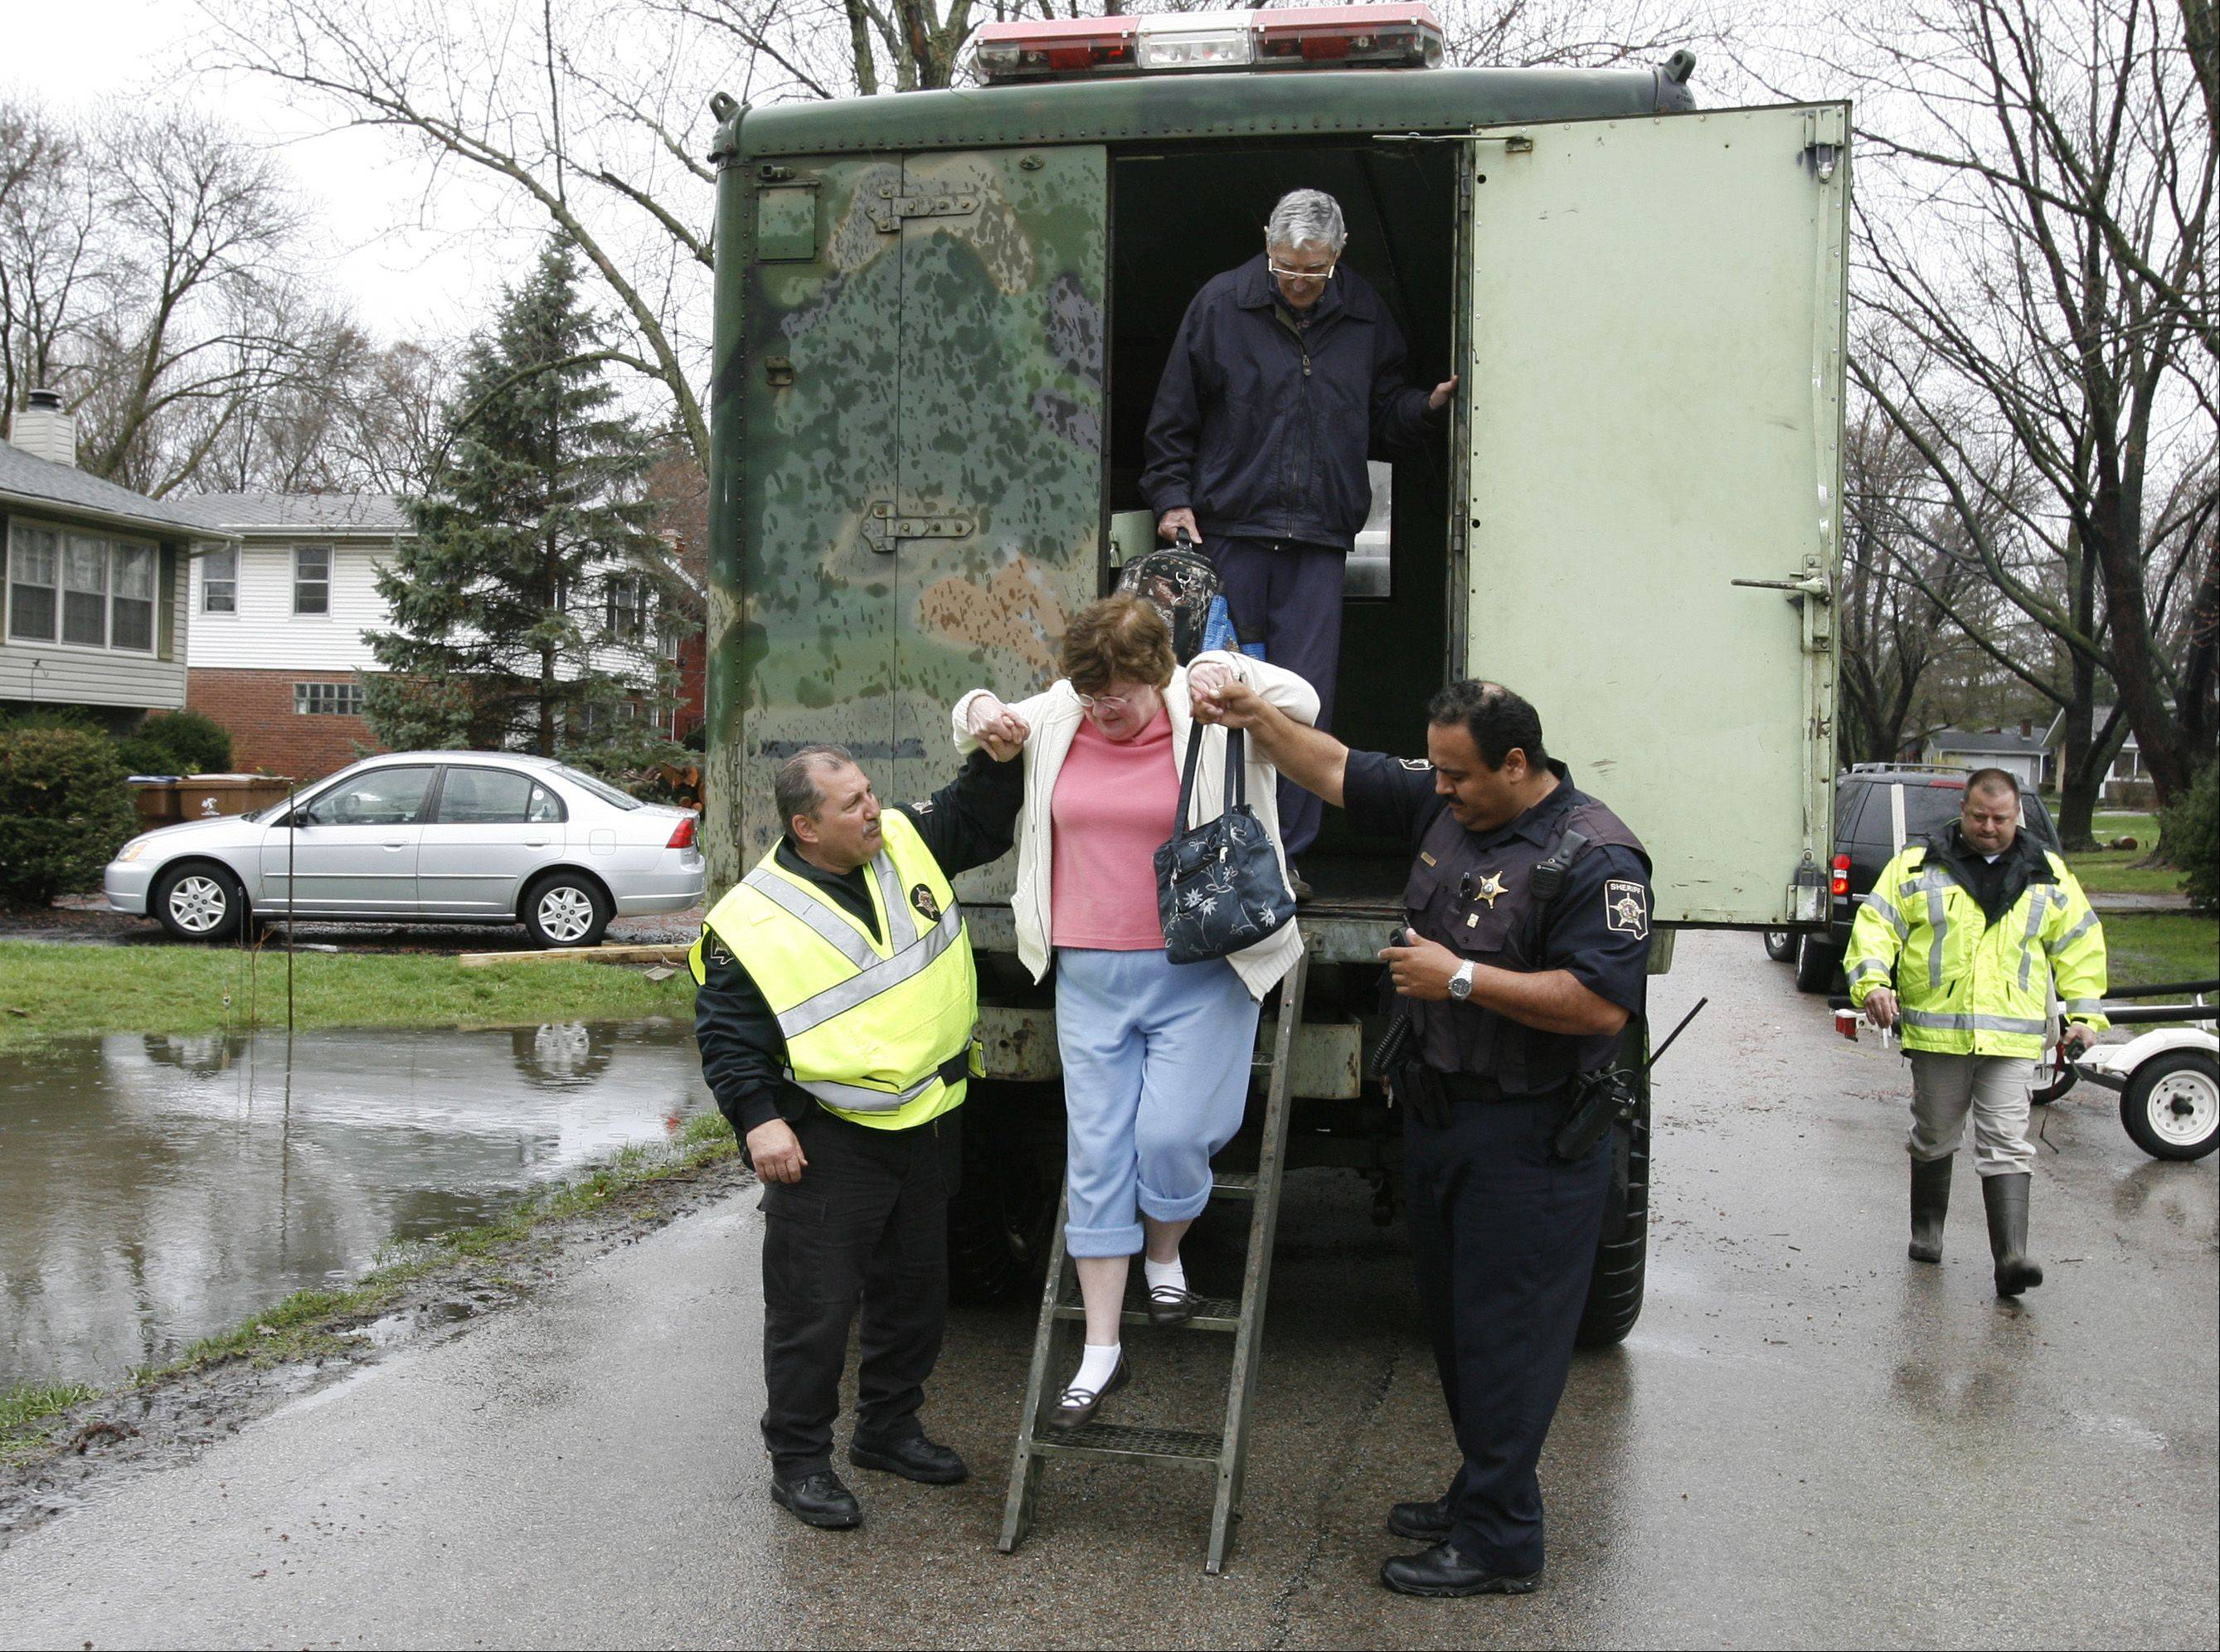 DuPage County sheriff�s deputies assist a resident who was rescued from her flooded home in the Valley View subdivision near Glen Ellyn.